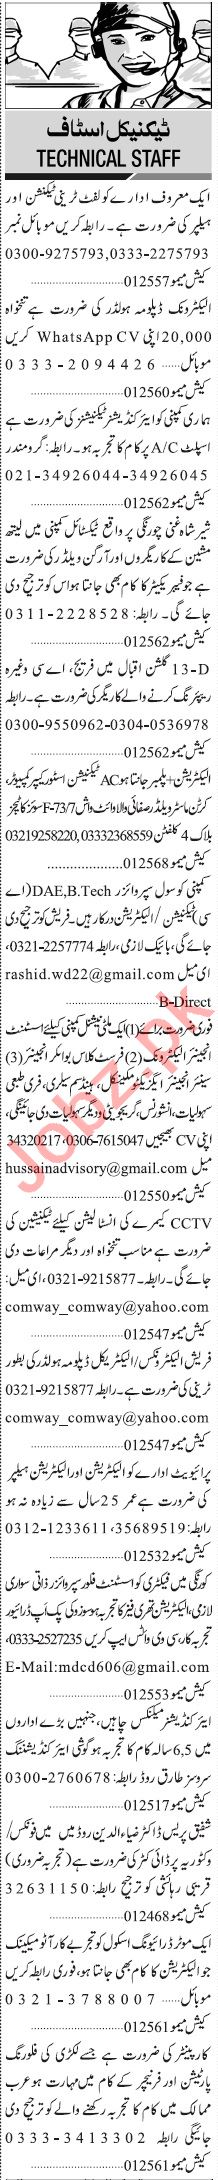 Jang Sunday Classified Ads 20 Sept 2020 for Technical Staff